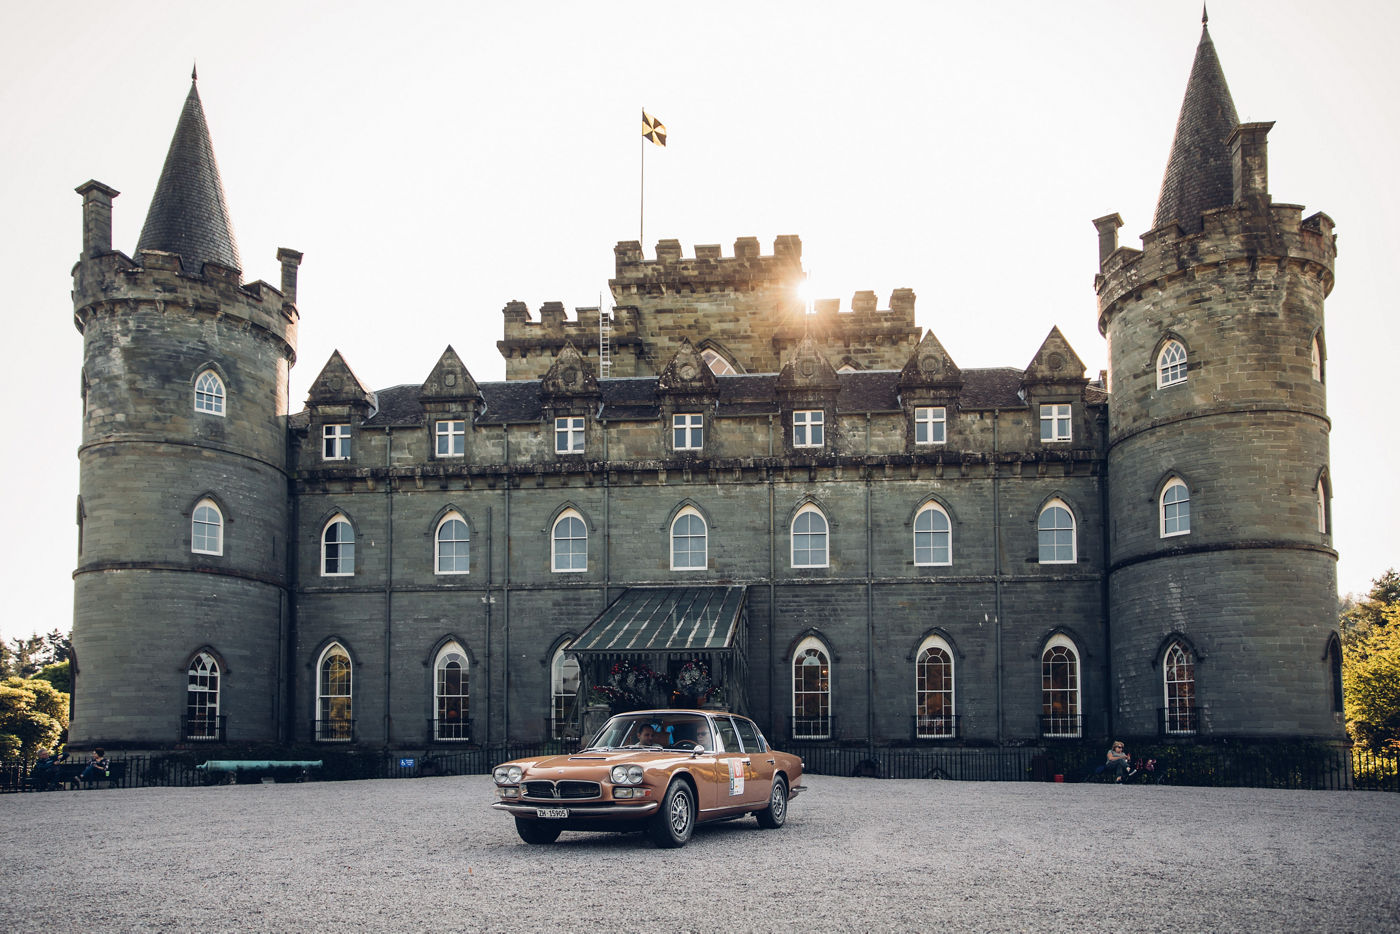 Maserati International Rally 2019 - Inveraray Castle